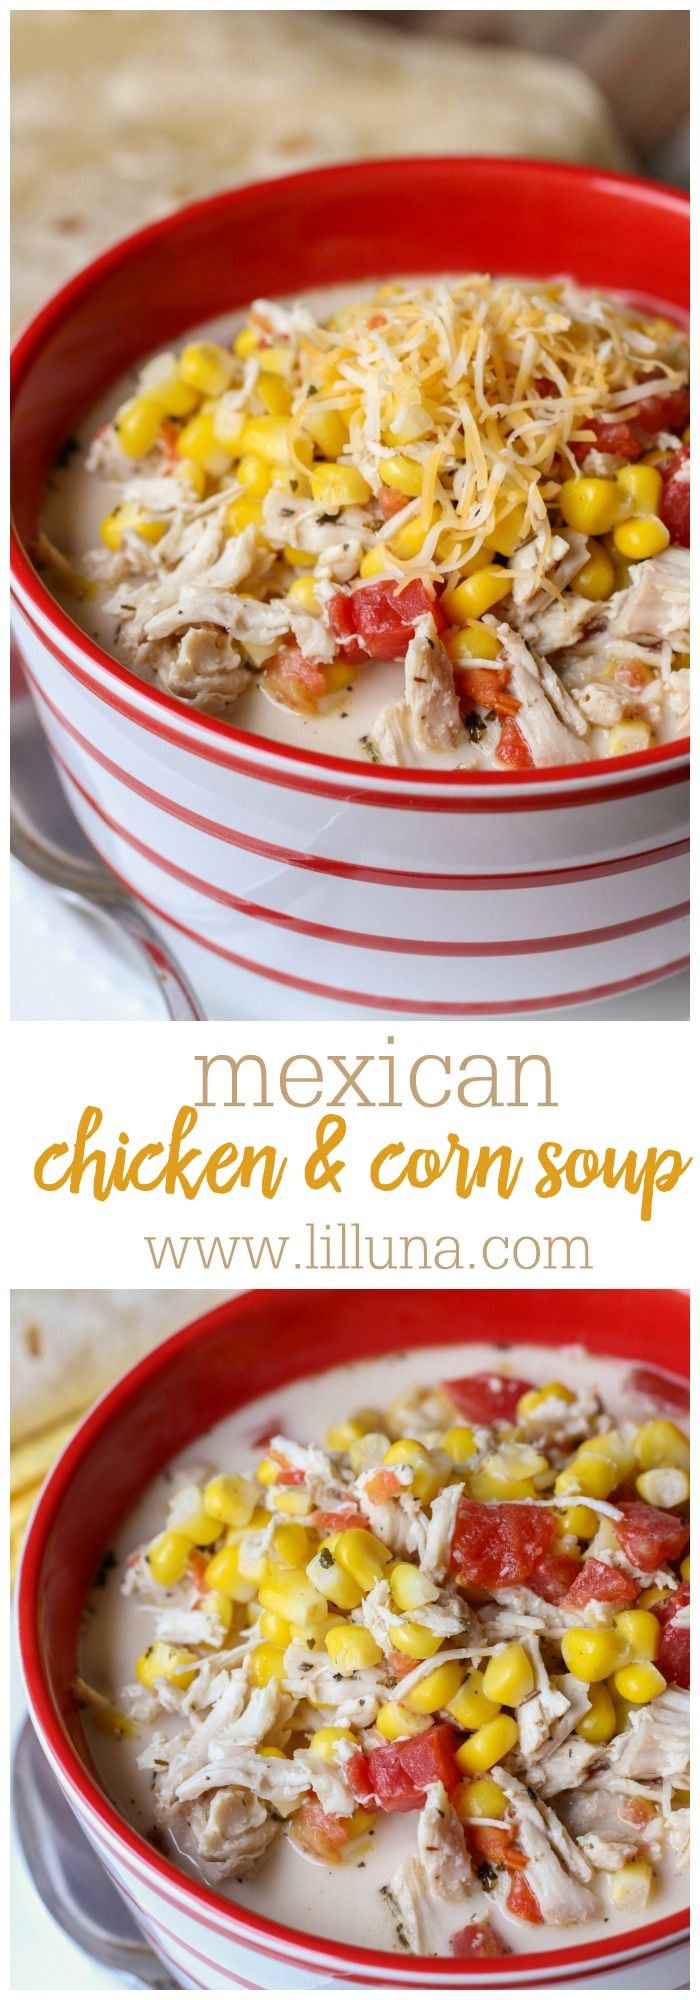 Delicious Mexican Chicken and Corn Soup - this recipe is so simple and can be made in 20 minutes!